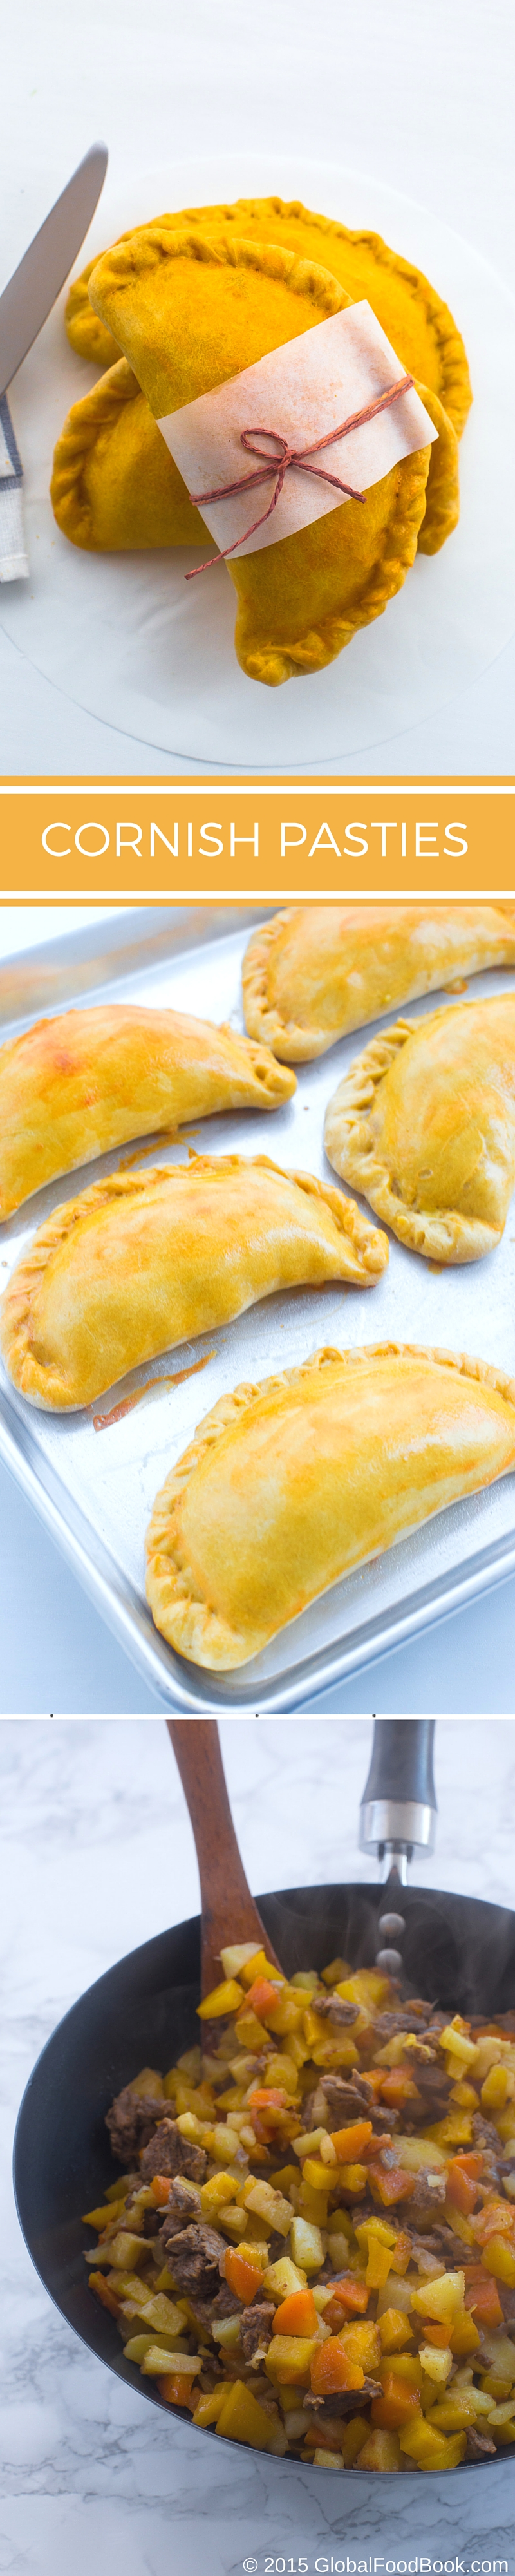 CORNISH PASTIES (3)